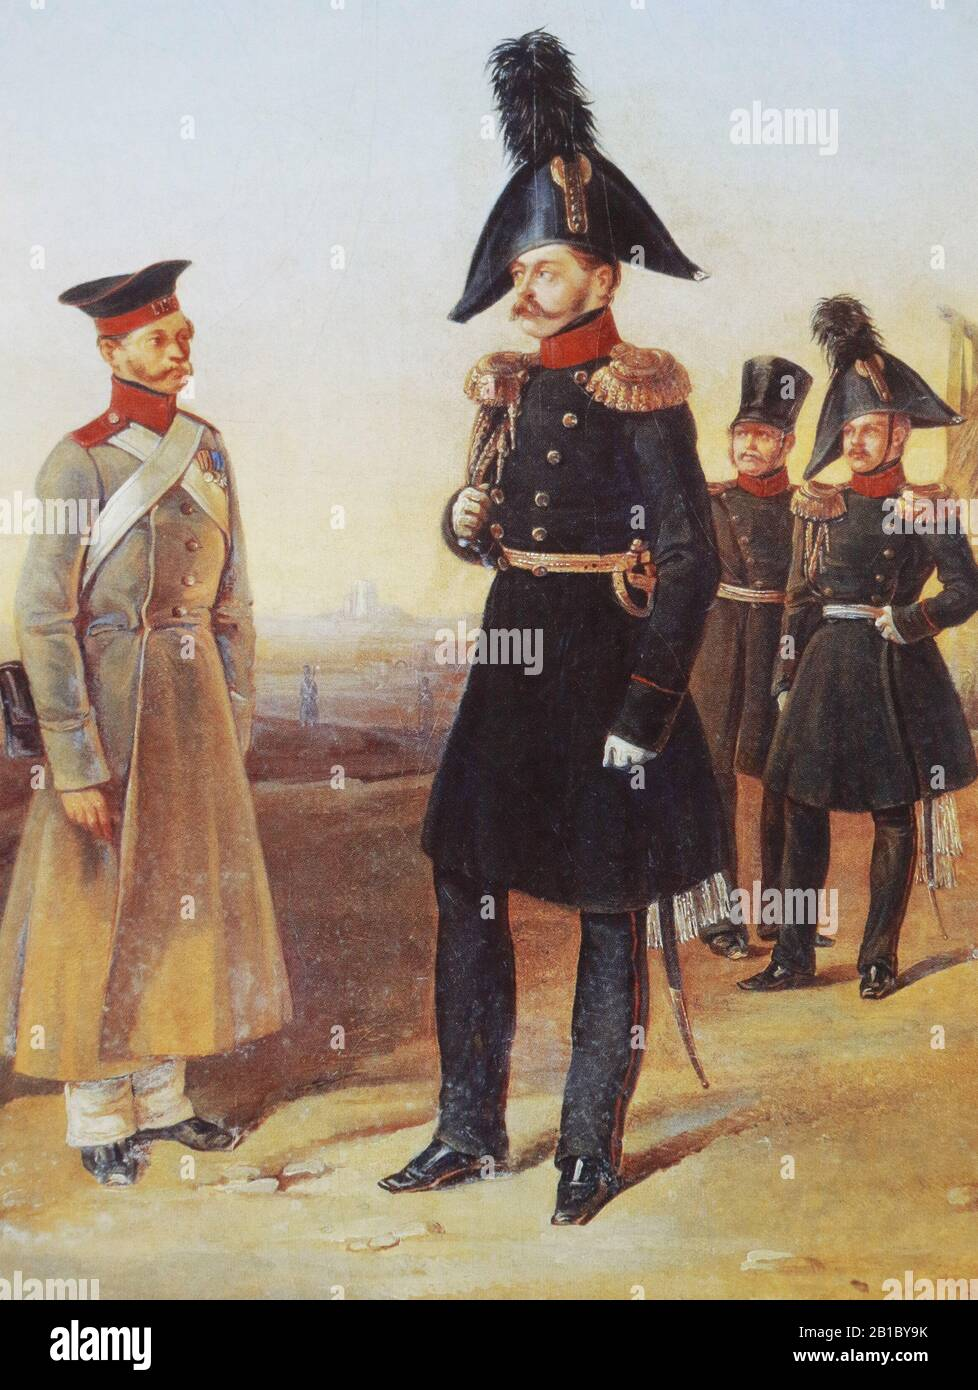 Grand Duke Mikhail Pavlovich - son of the Russian Emperor Paul I. Painting by Dorier, 19th century Stock Photo